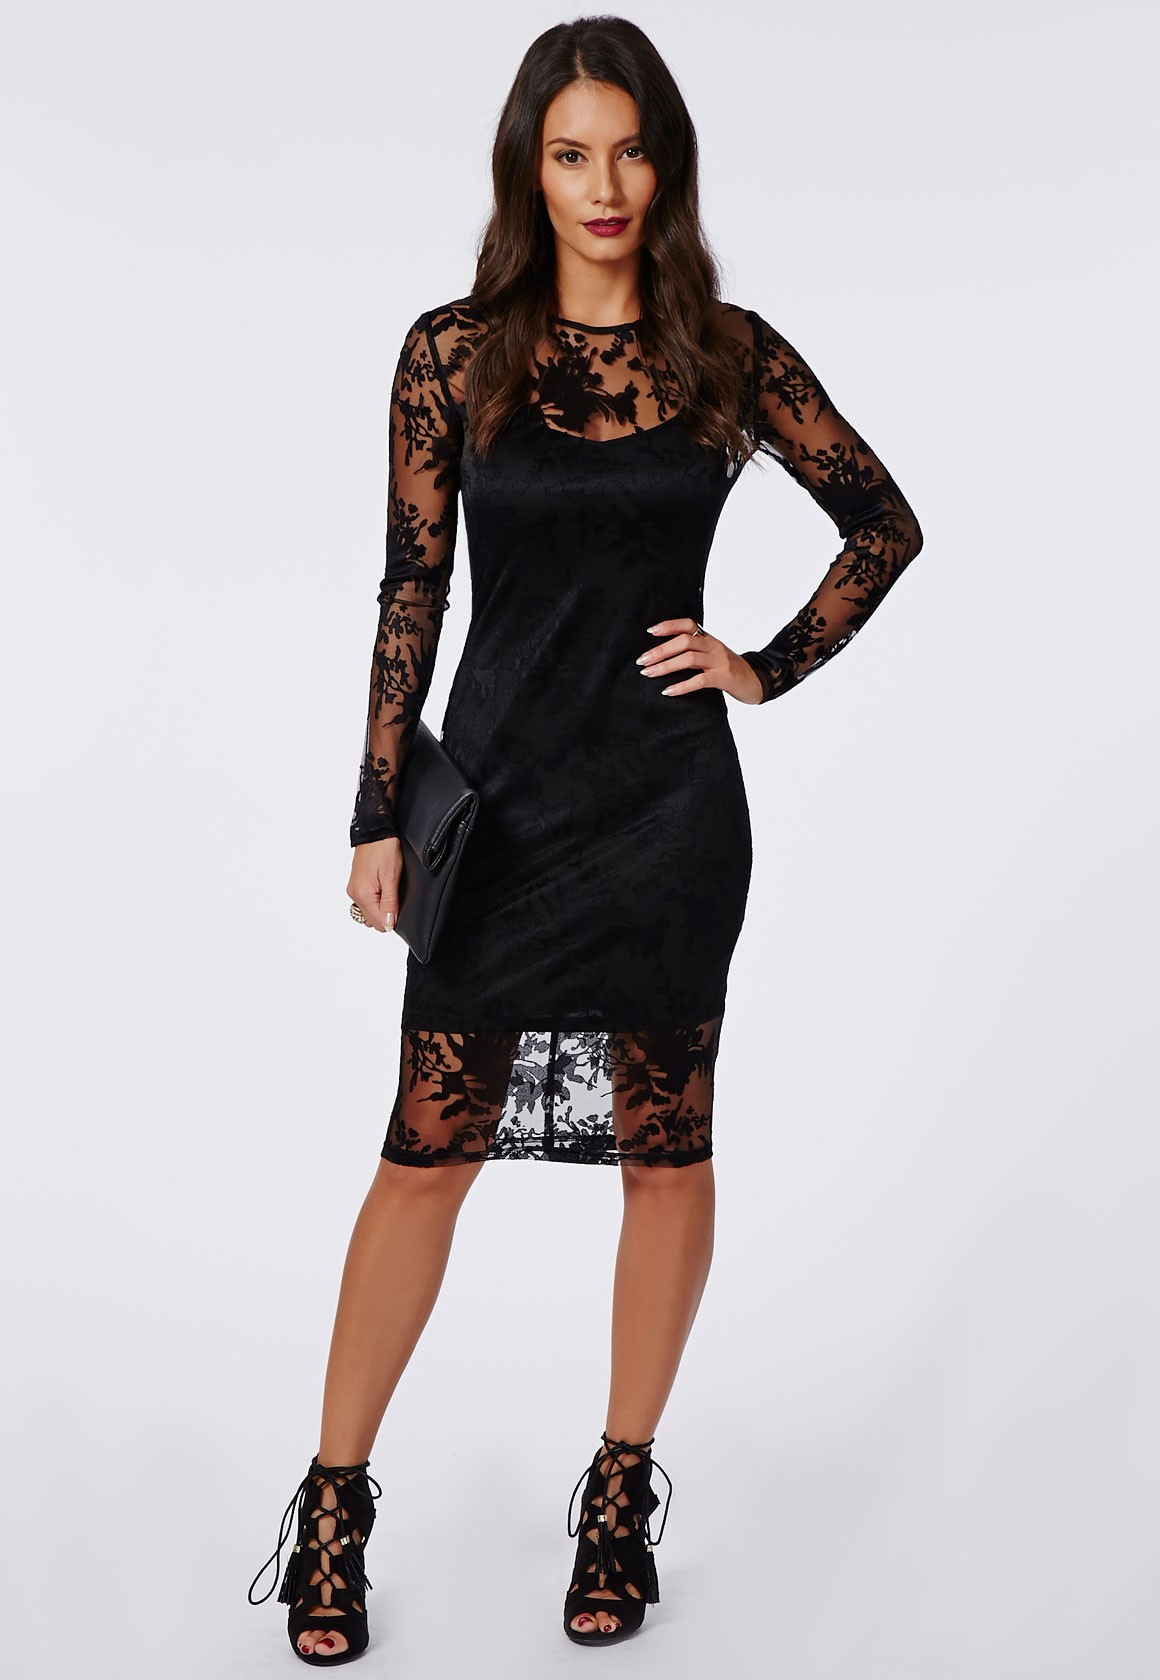 Long Sleeve Black Lace Mini Dress Long Sleeve Black Sequin Mini